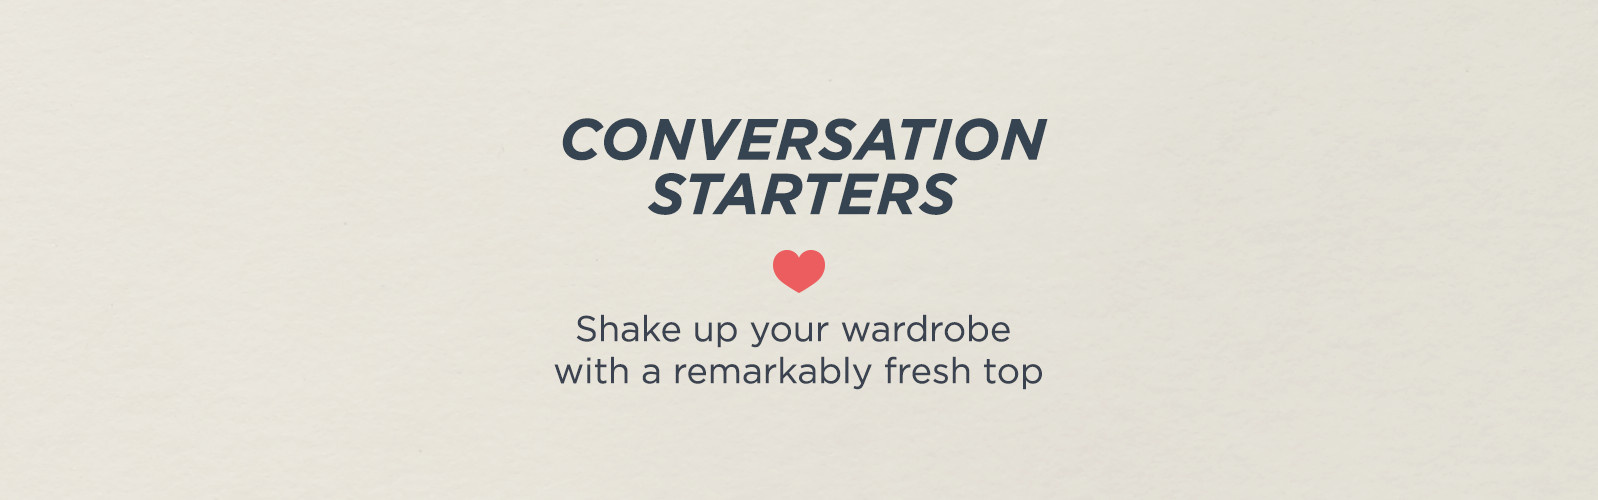 Conversation Starters  Shake up your wardrobe with remarkably fresh designsConversation Starters  Shake up your wardrobe with a remarkably fresh top